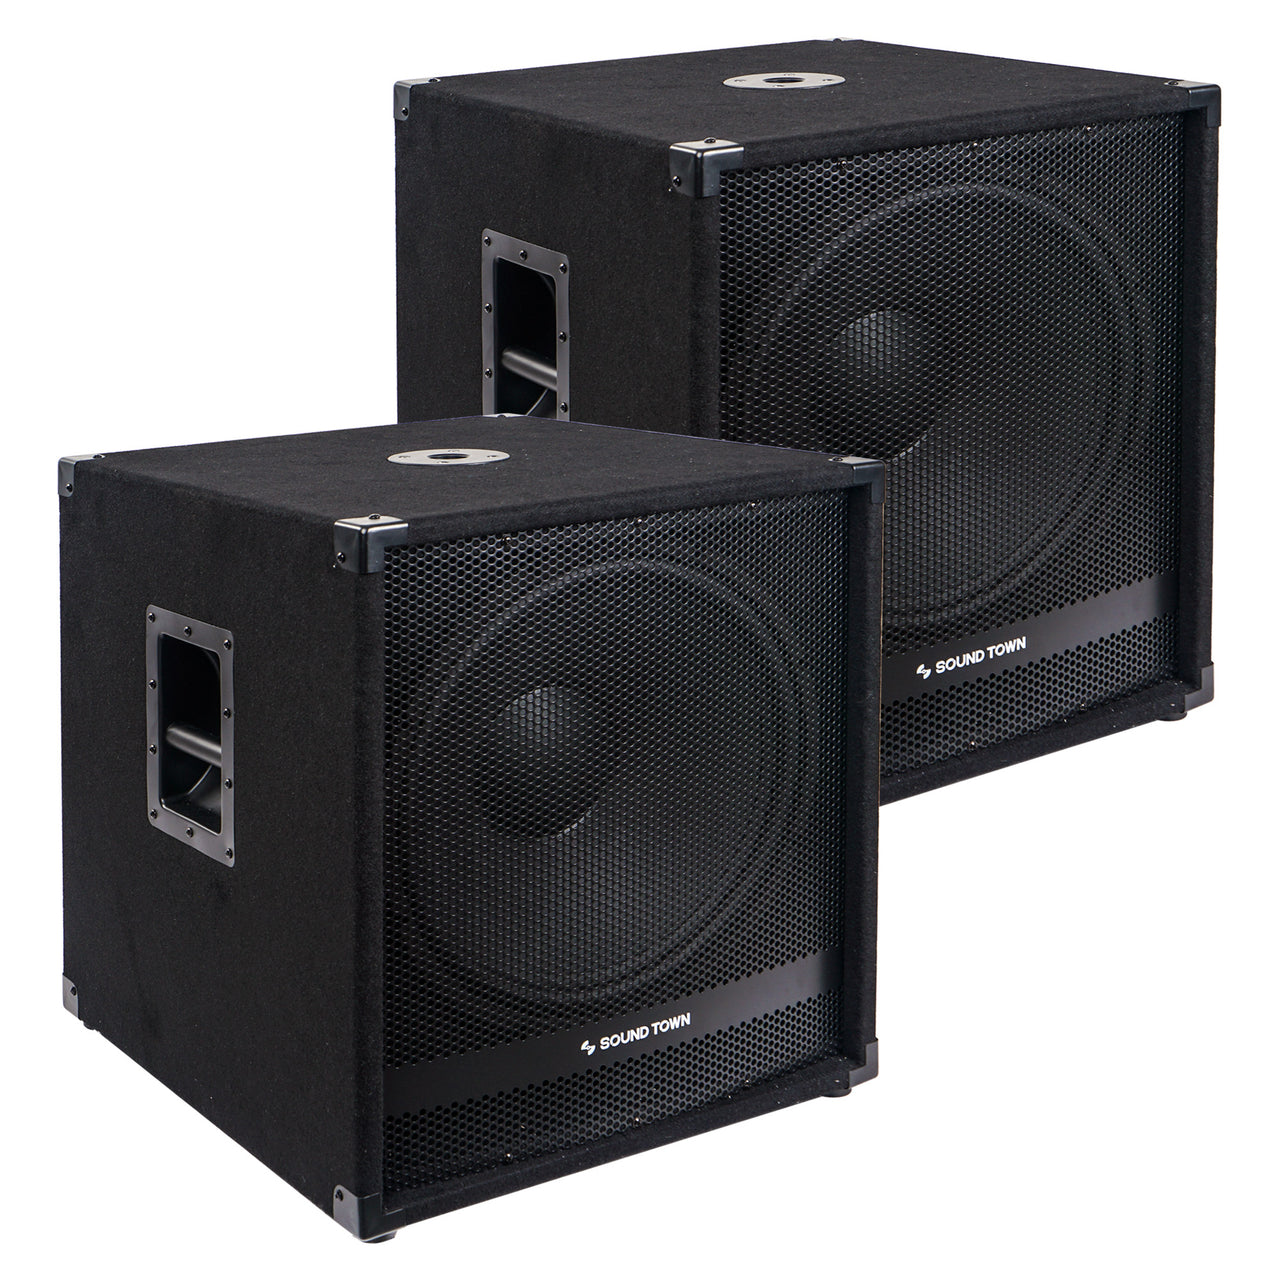 "Sound Town METIS-18SDPW-PAIR Pair of 18"" 4800 Watts Powered Subwoofers with Class-D Amplifier, 4-inch Voice Coil"